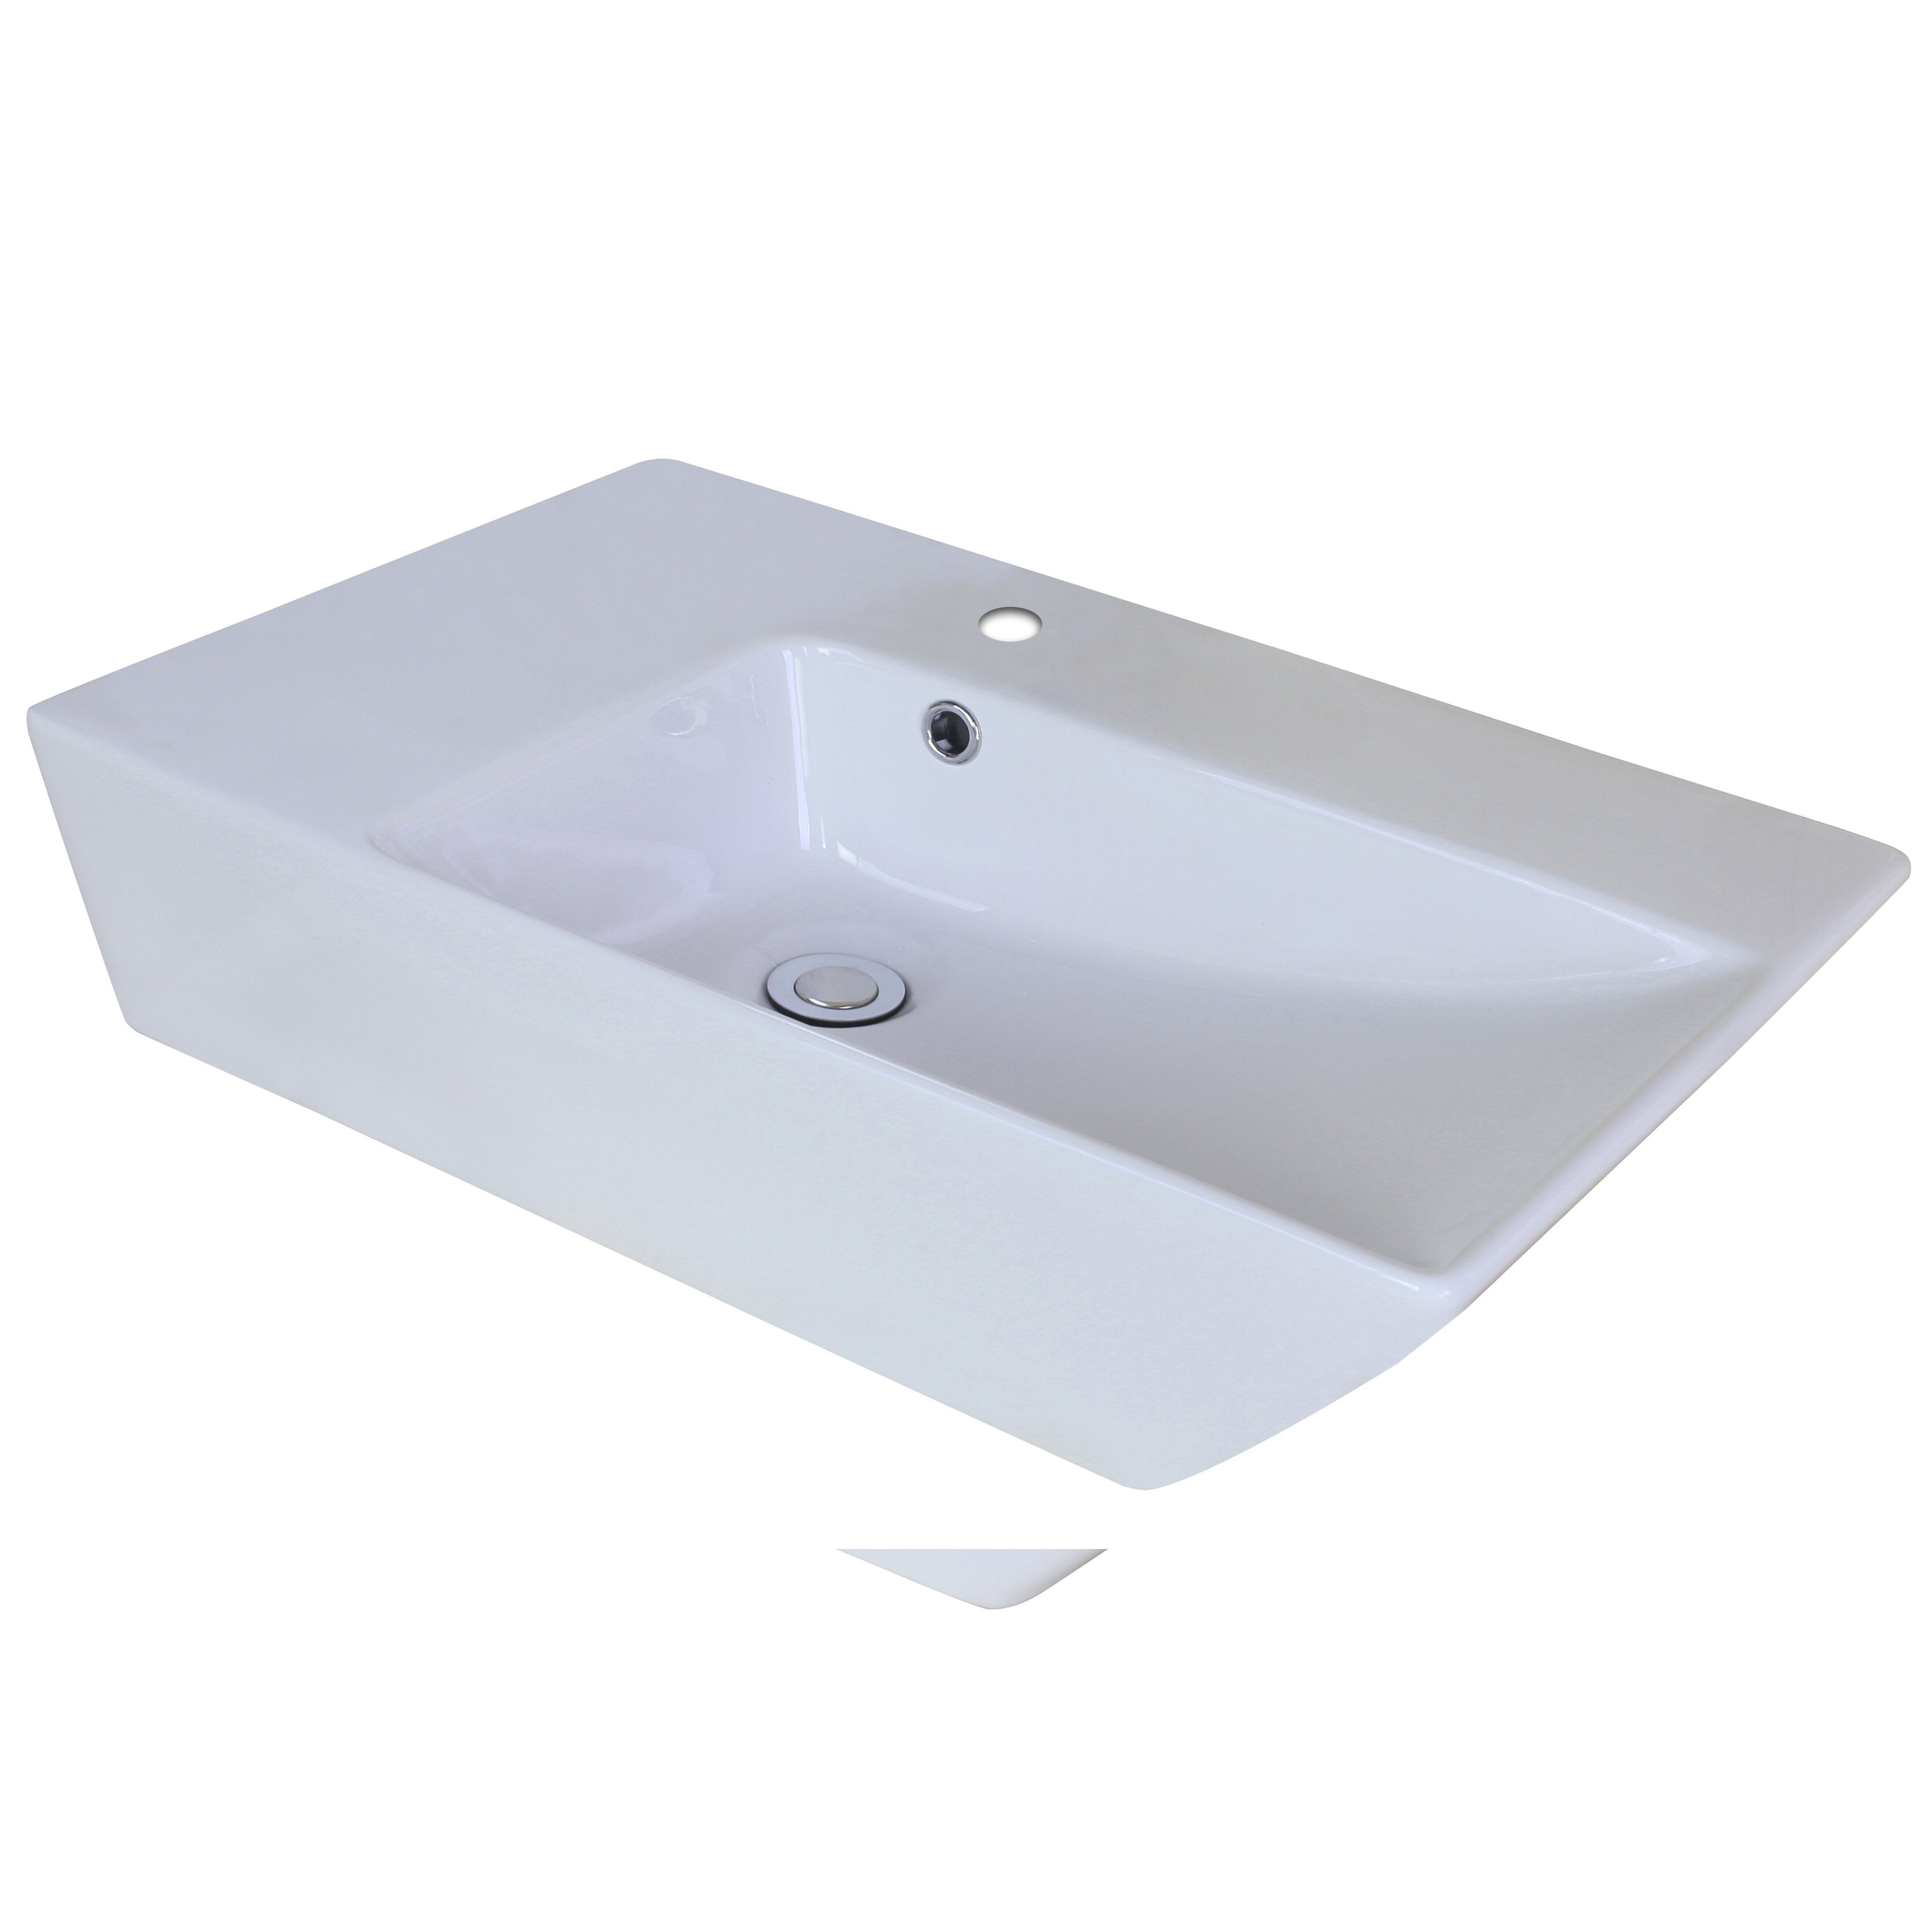 ... Imaginations Above Counter Rectangle Vessel Sink with Overflow